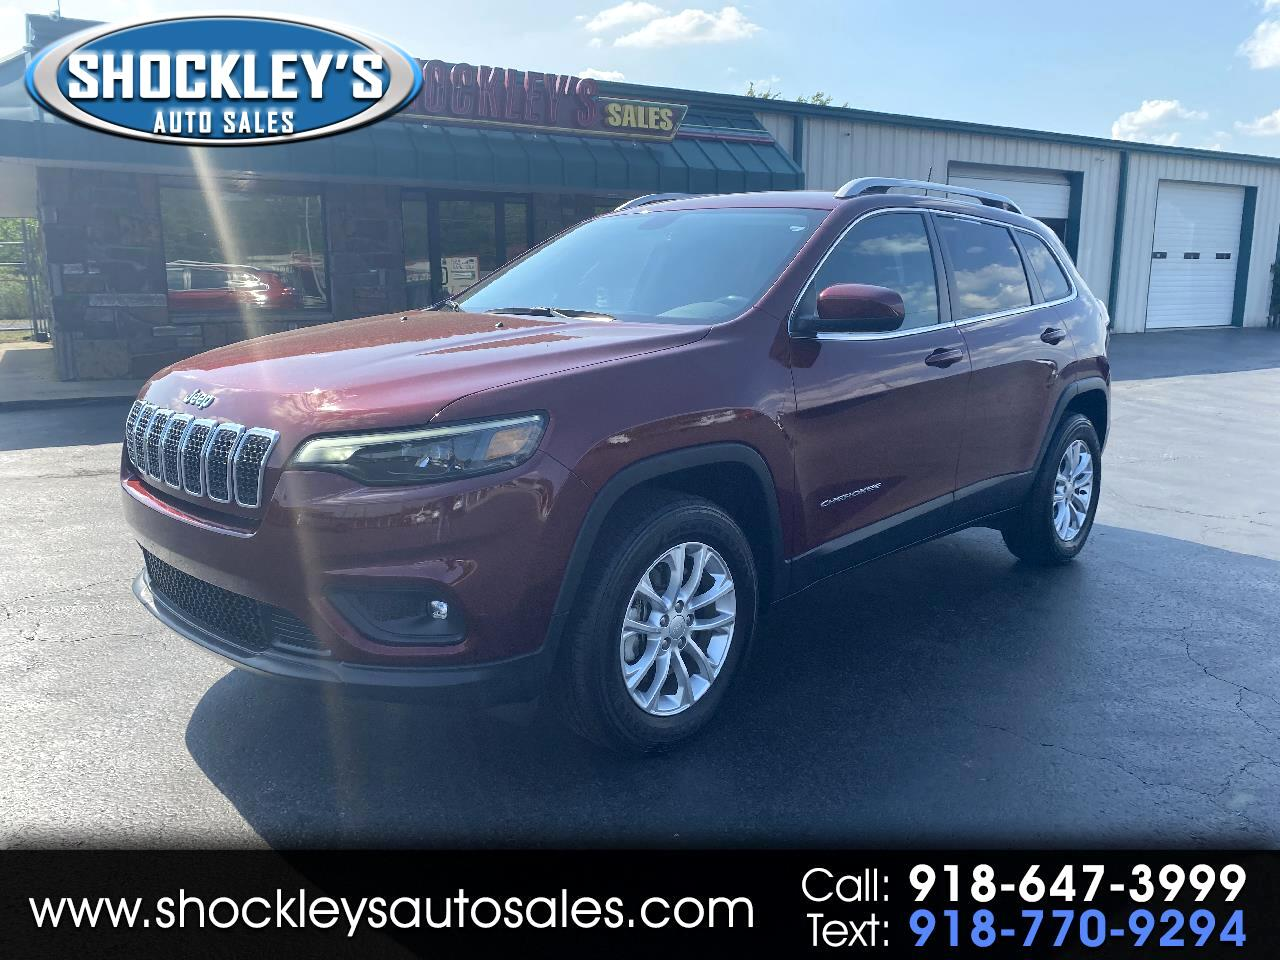 used 2019 jeep cherokee latitude 4x4 for sale in poteau ok 74953 shockley s auto sales shockley s auto sales